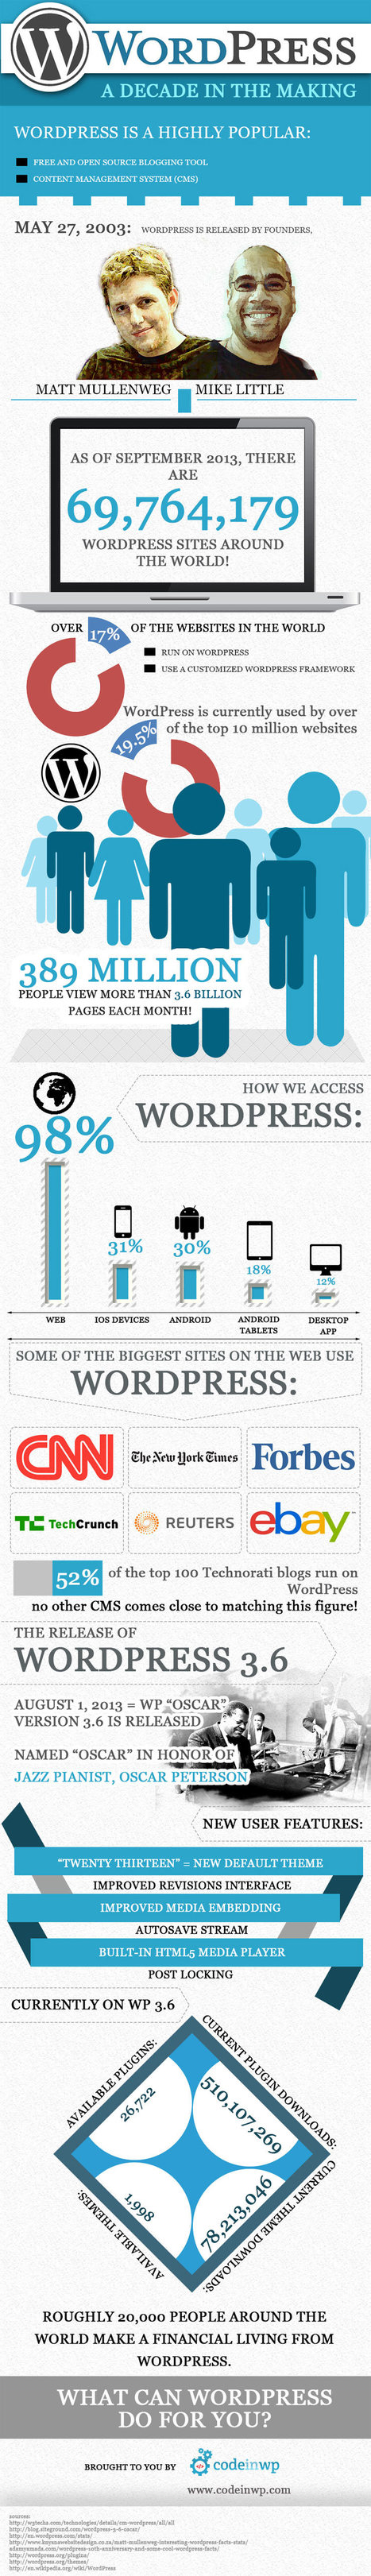 WordPress: a Decade in the Making, an infographic /@BerriePelser | Global Growth Relations | Scoop.it